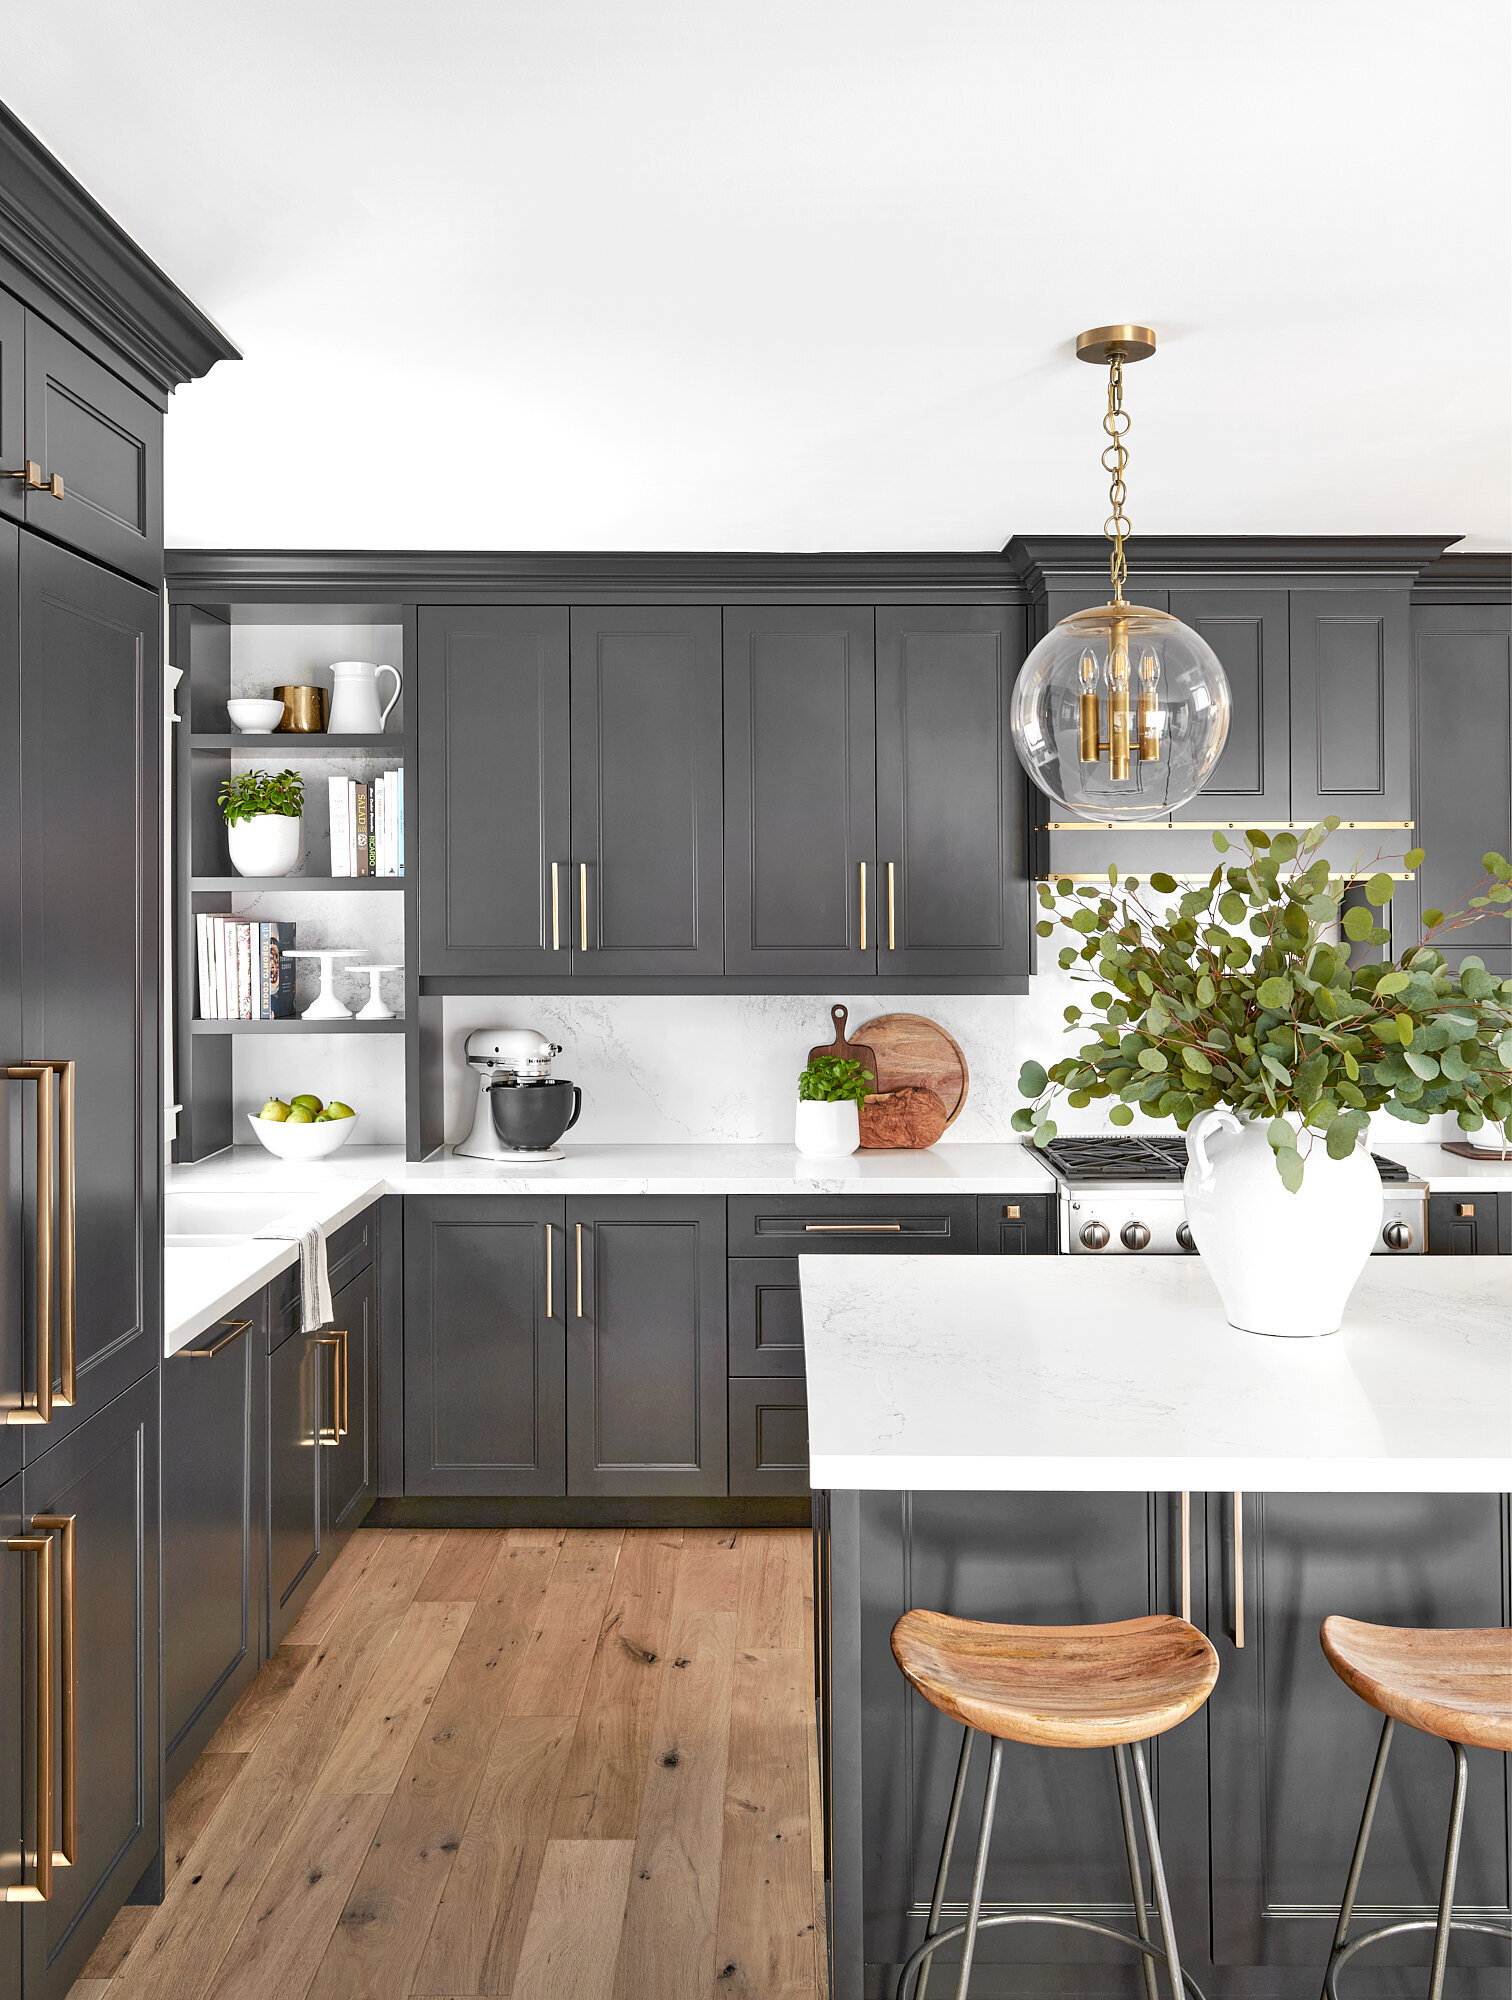 blue kitchen cabinets and subway tile backsplash in Burlington interior designer's home